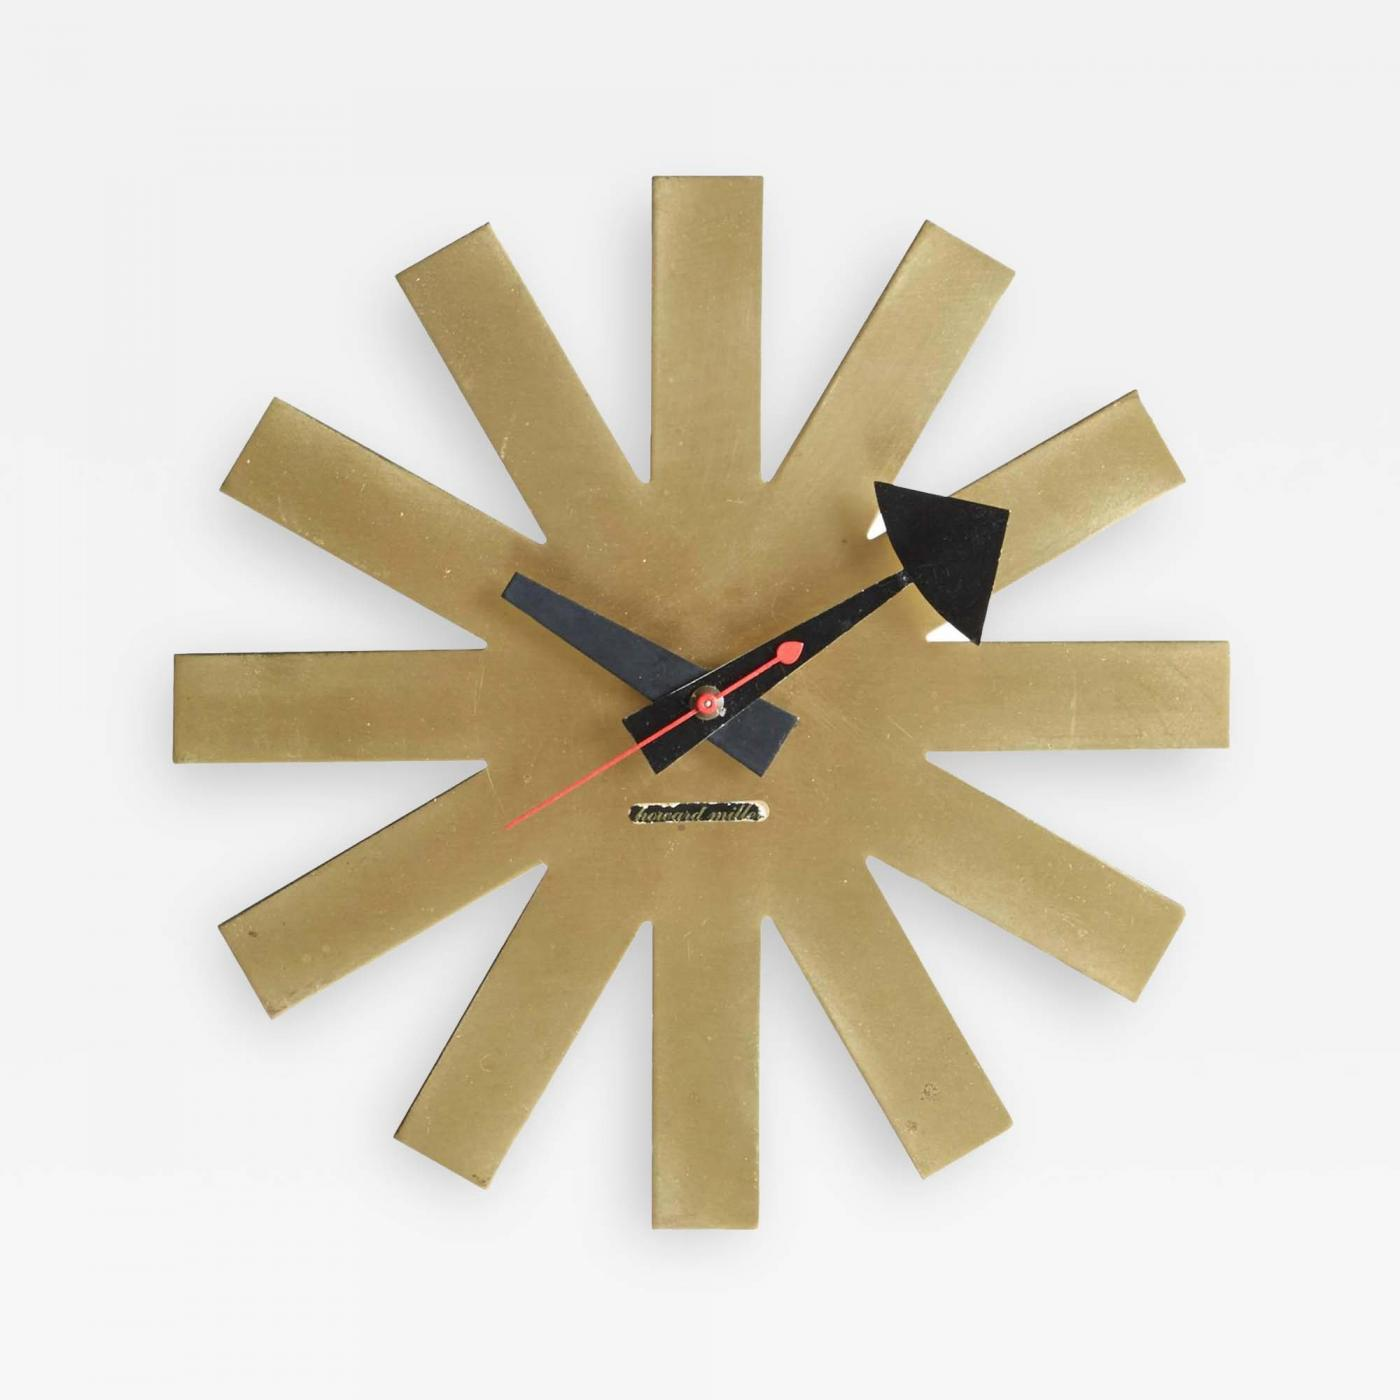 george nelson  asterisk clock by george nelson circa  - listings  decorative arts  clocks  wall clocks · george nelson